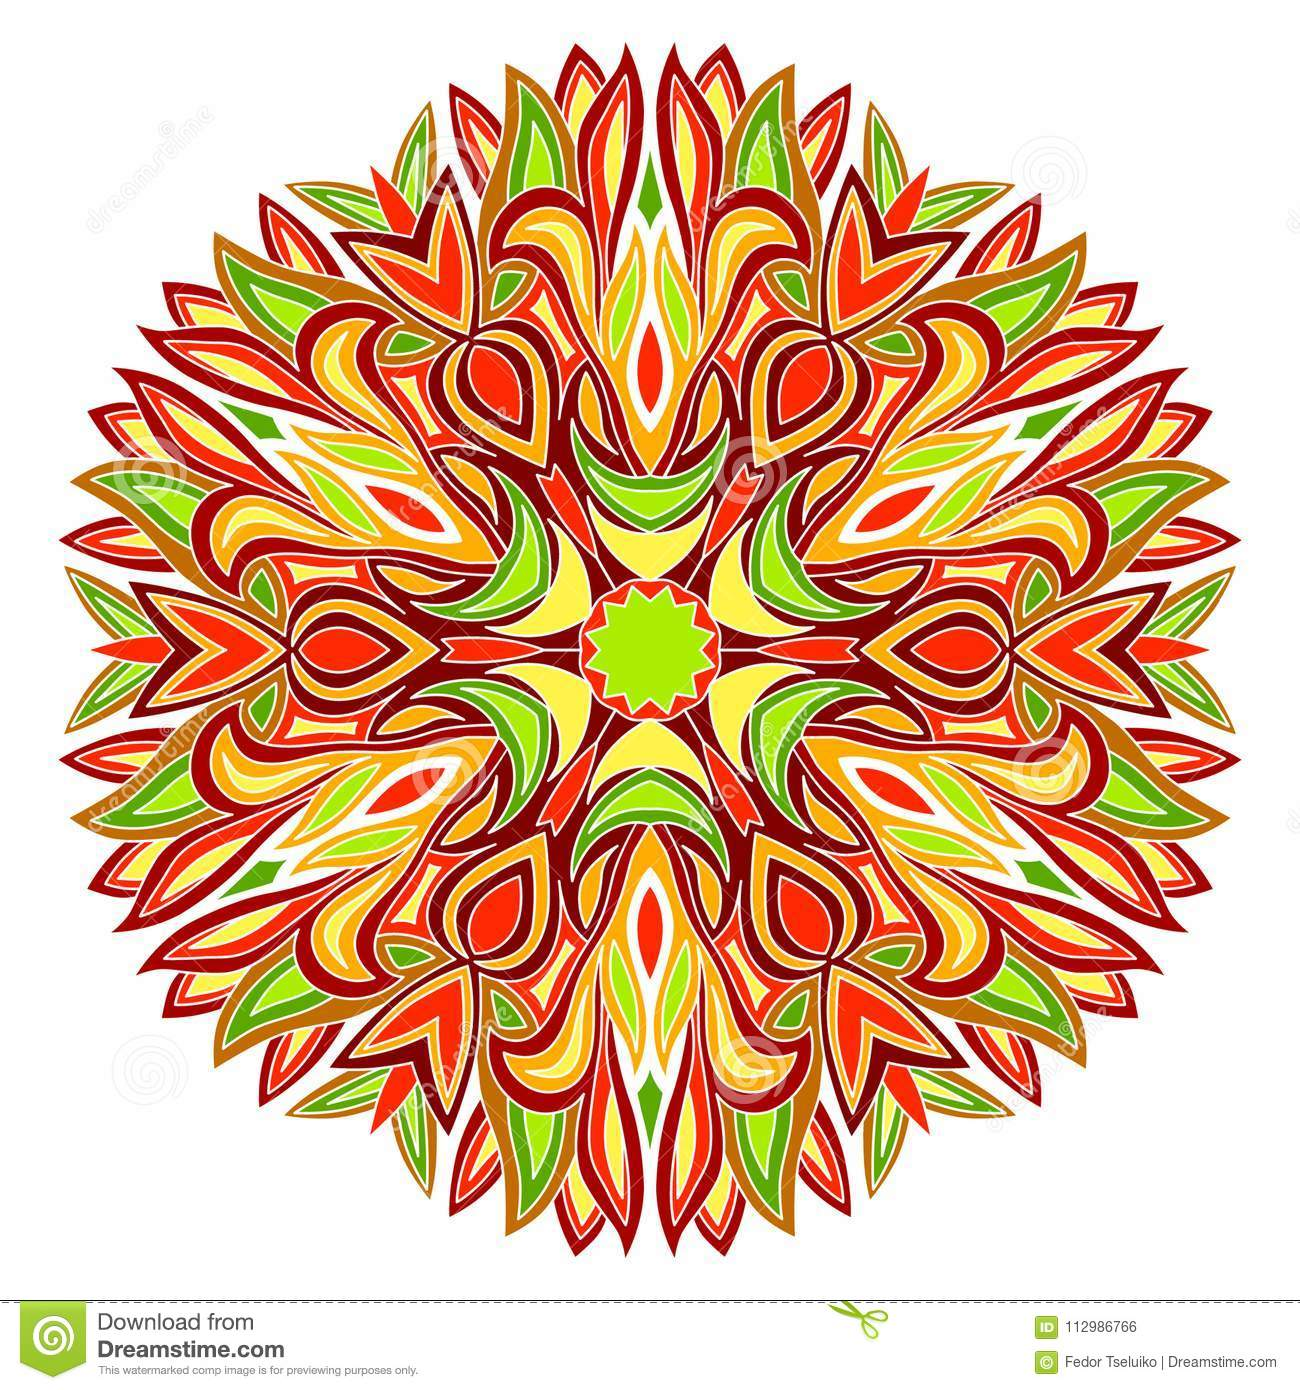 Colorful radial ornament.